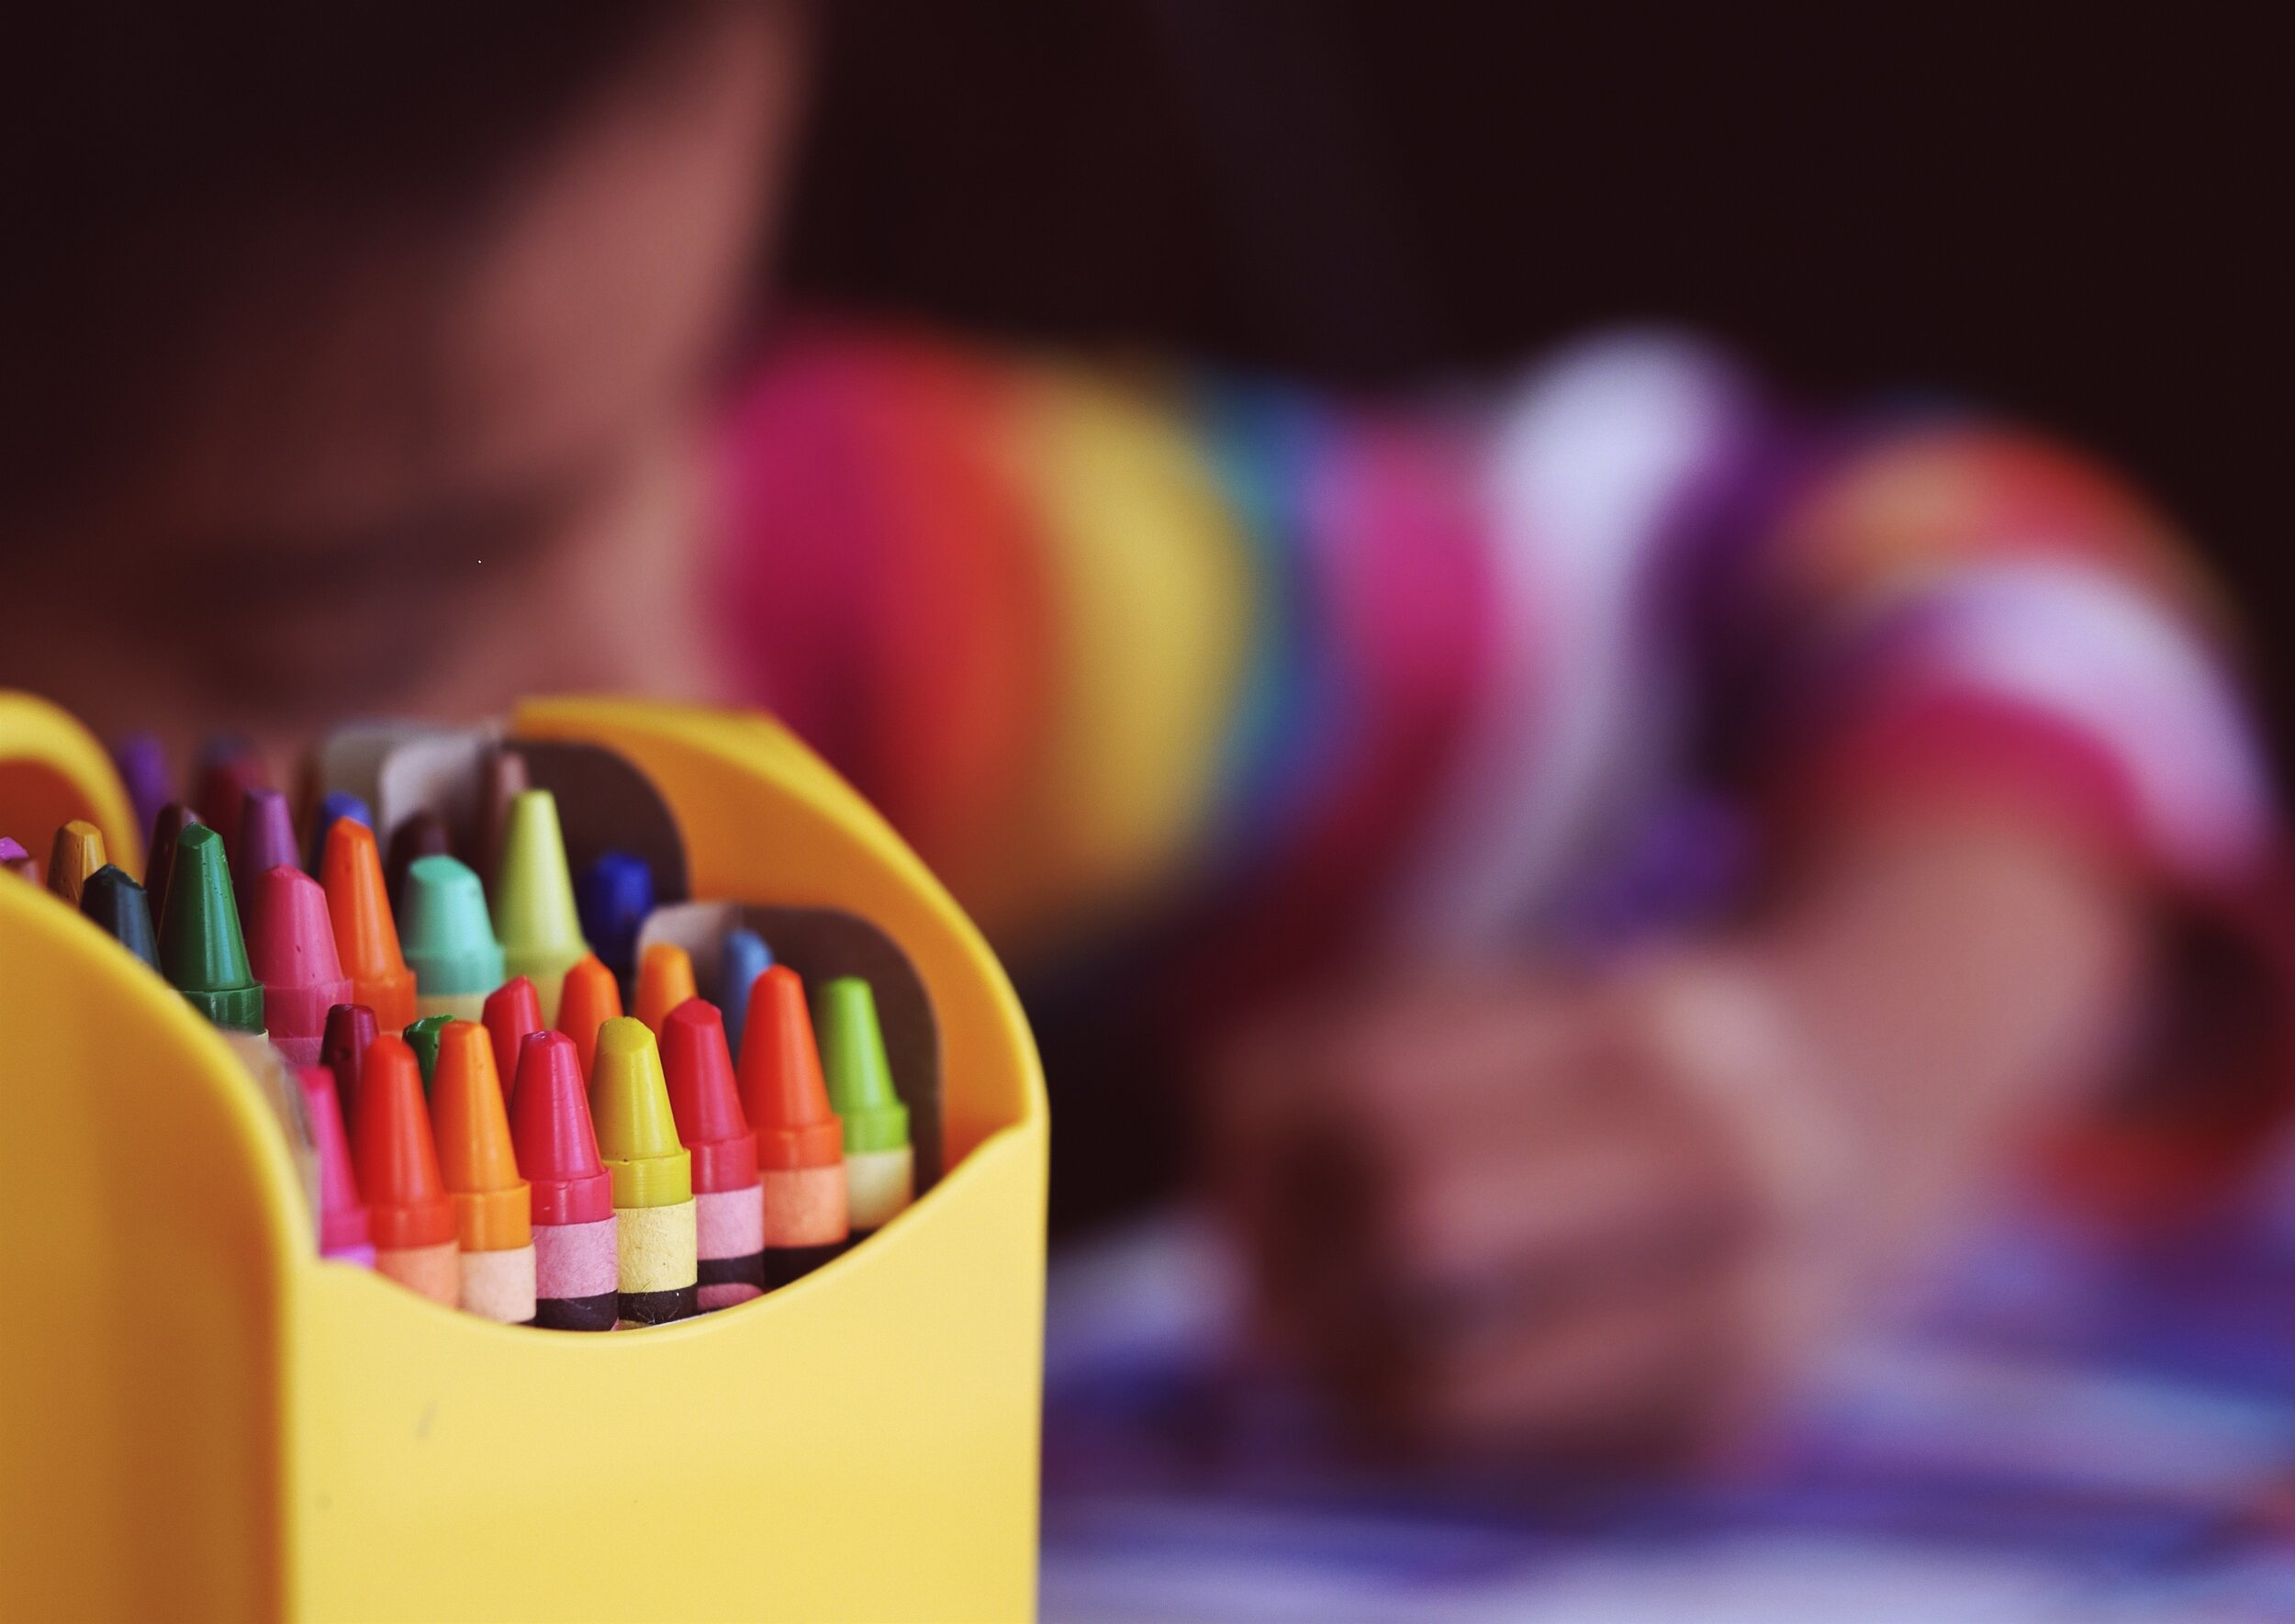 Crayons, Marker, Colored Pencils, and more!